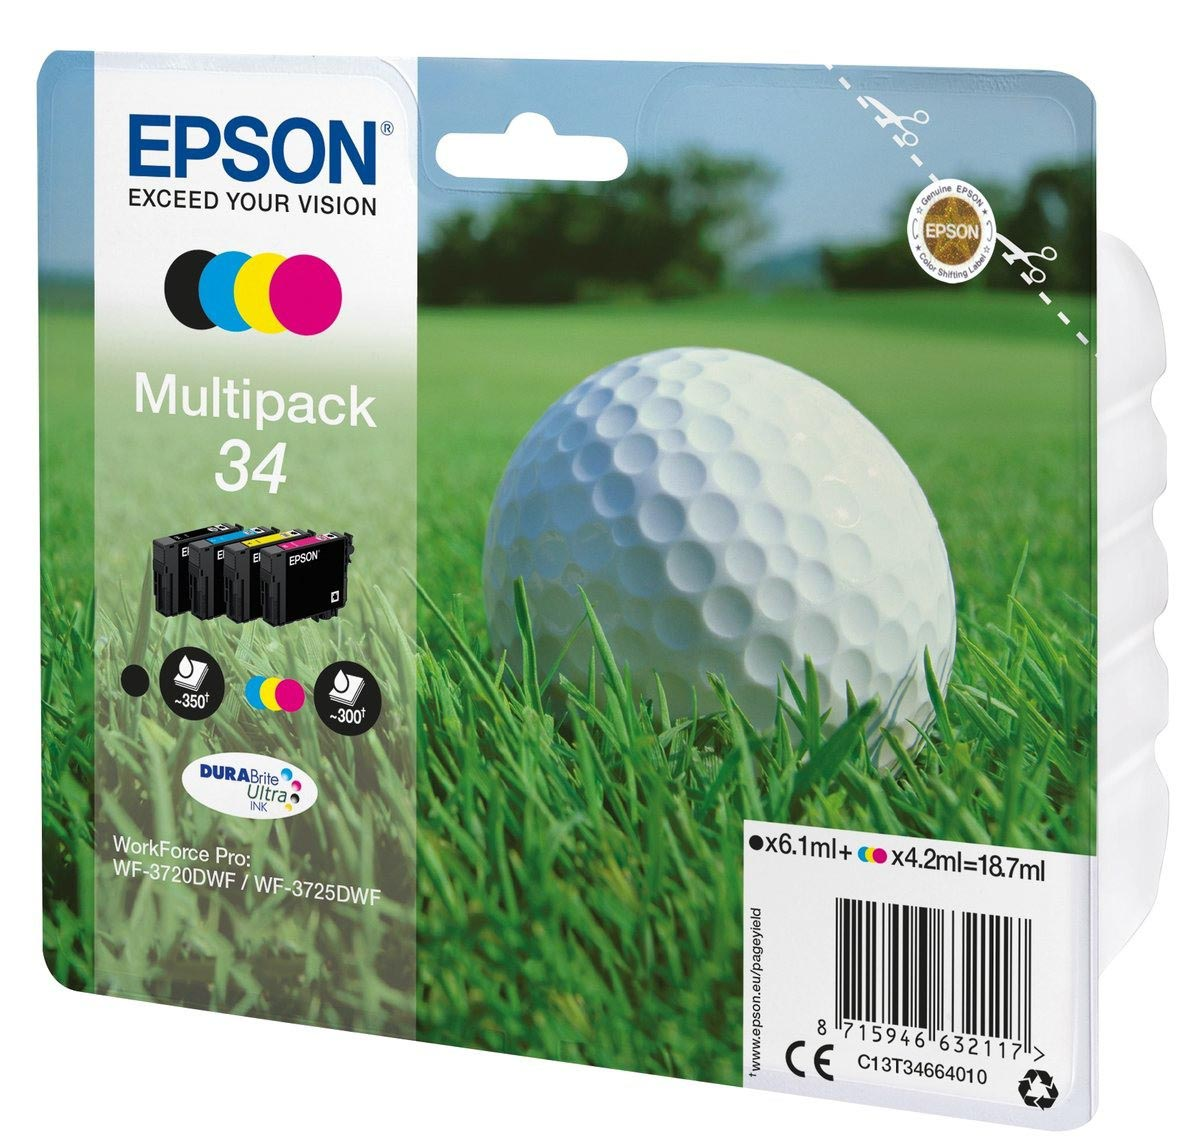 Multipack de tinta original Epson 34 Bola de Golf 4 colores